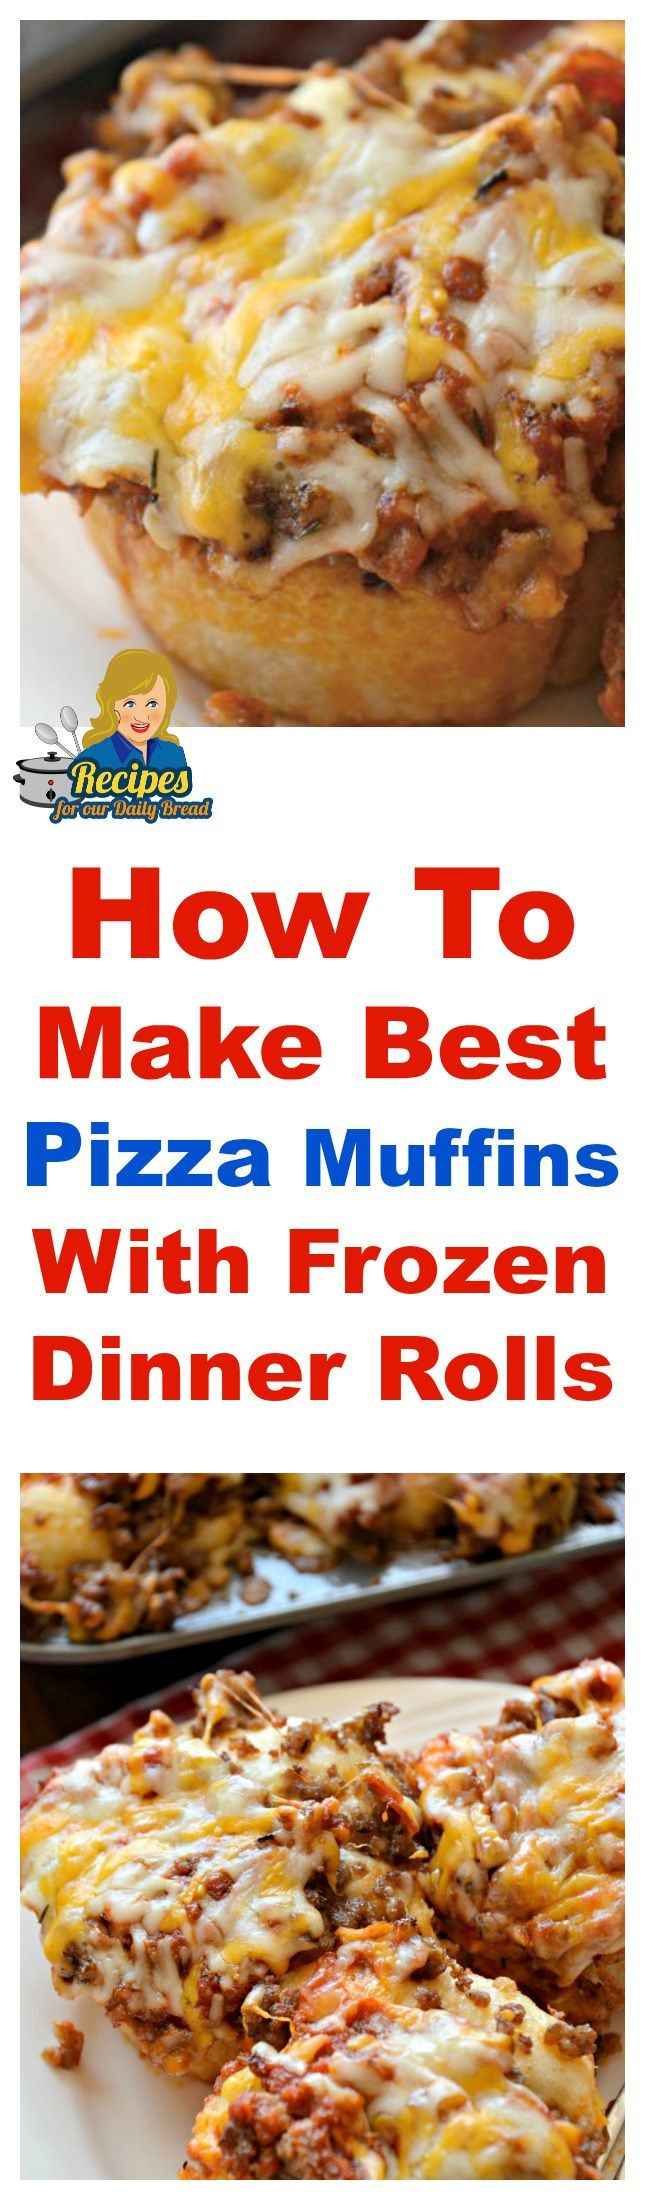 How To Make Best Pizza Muffins With Frozen Dinner Rolls | Recipes For Our Daily Bread | #pizza muffins